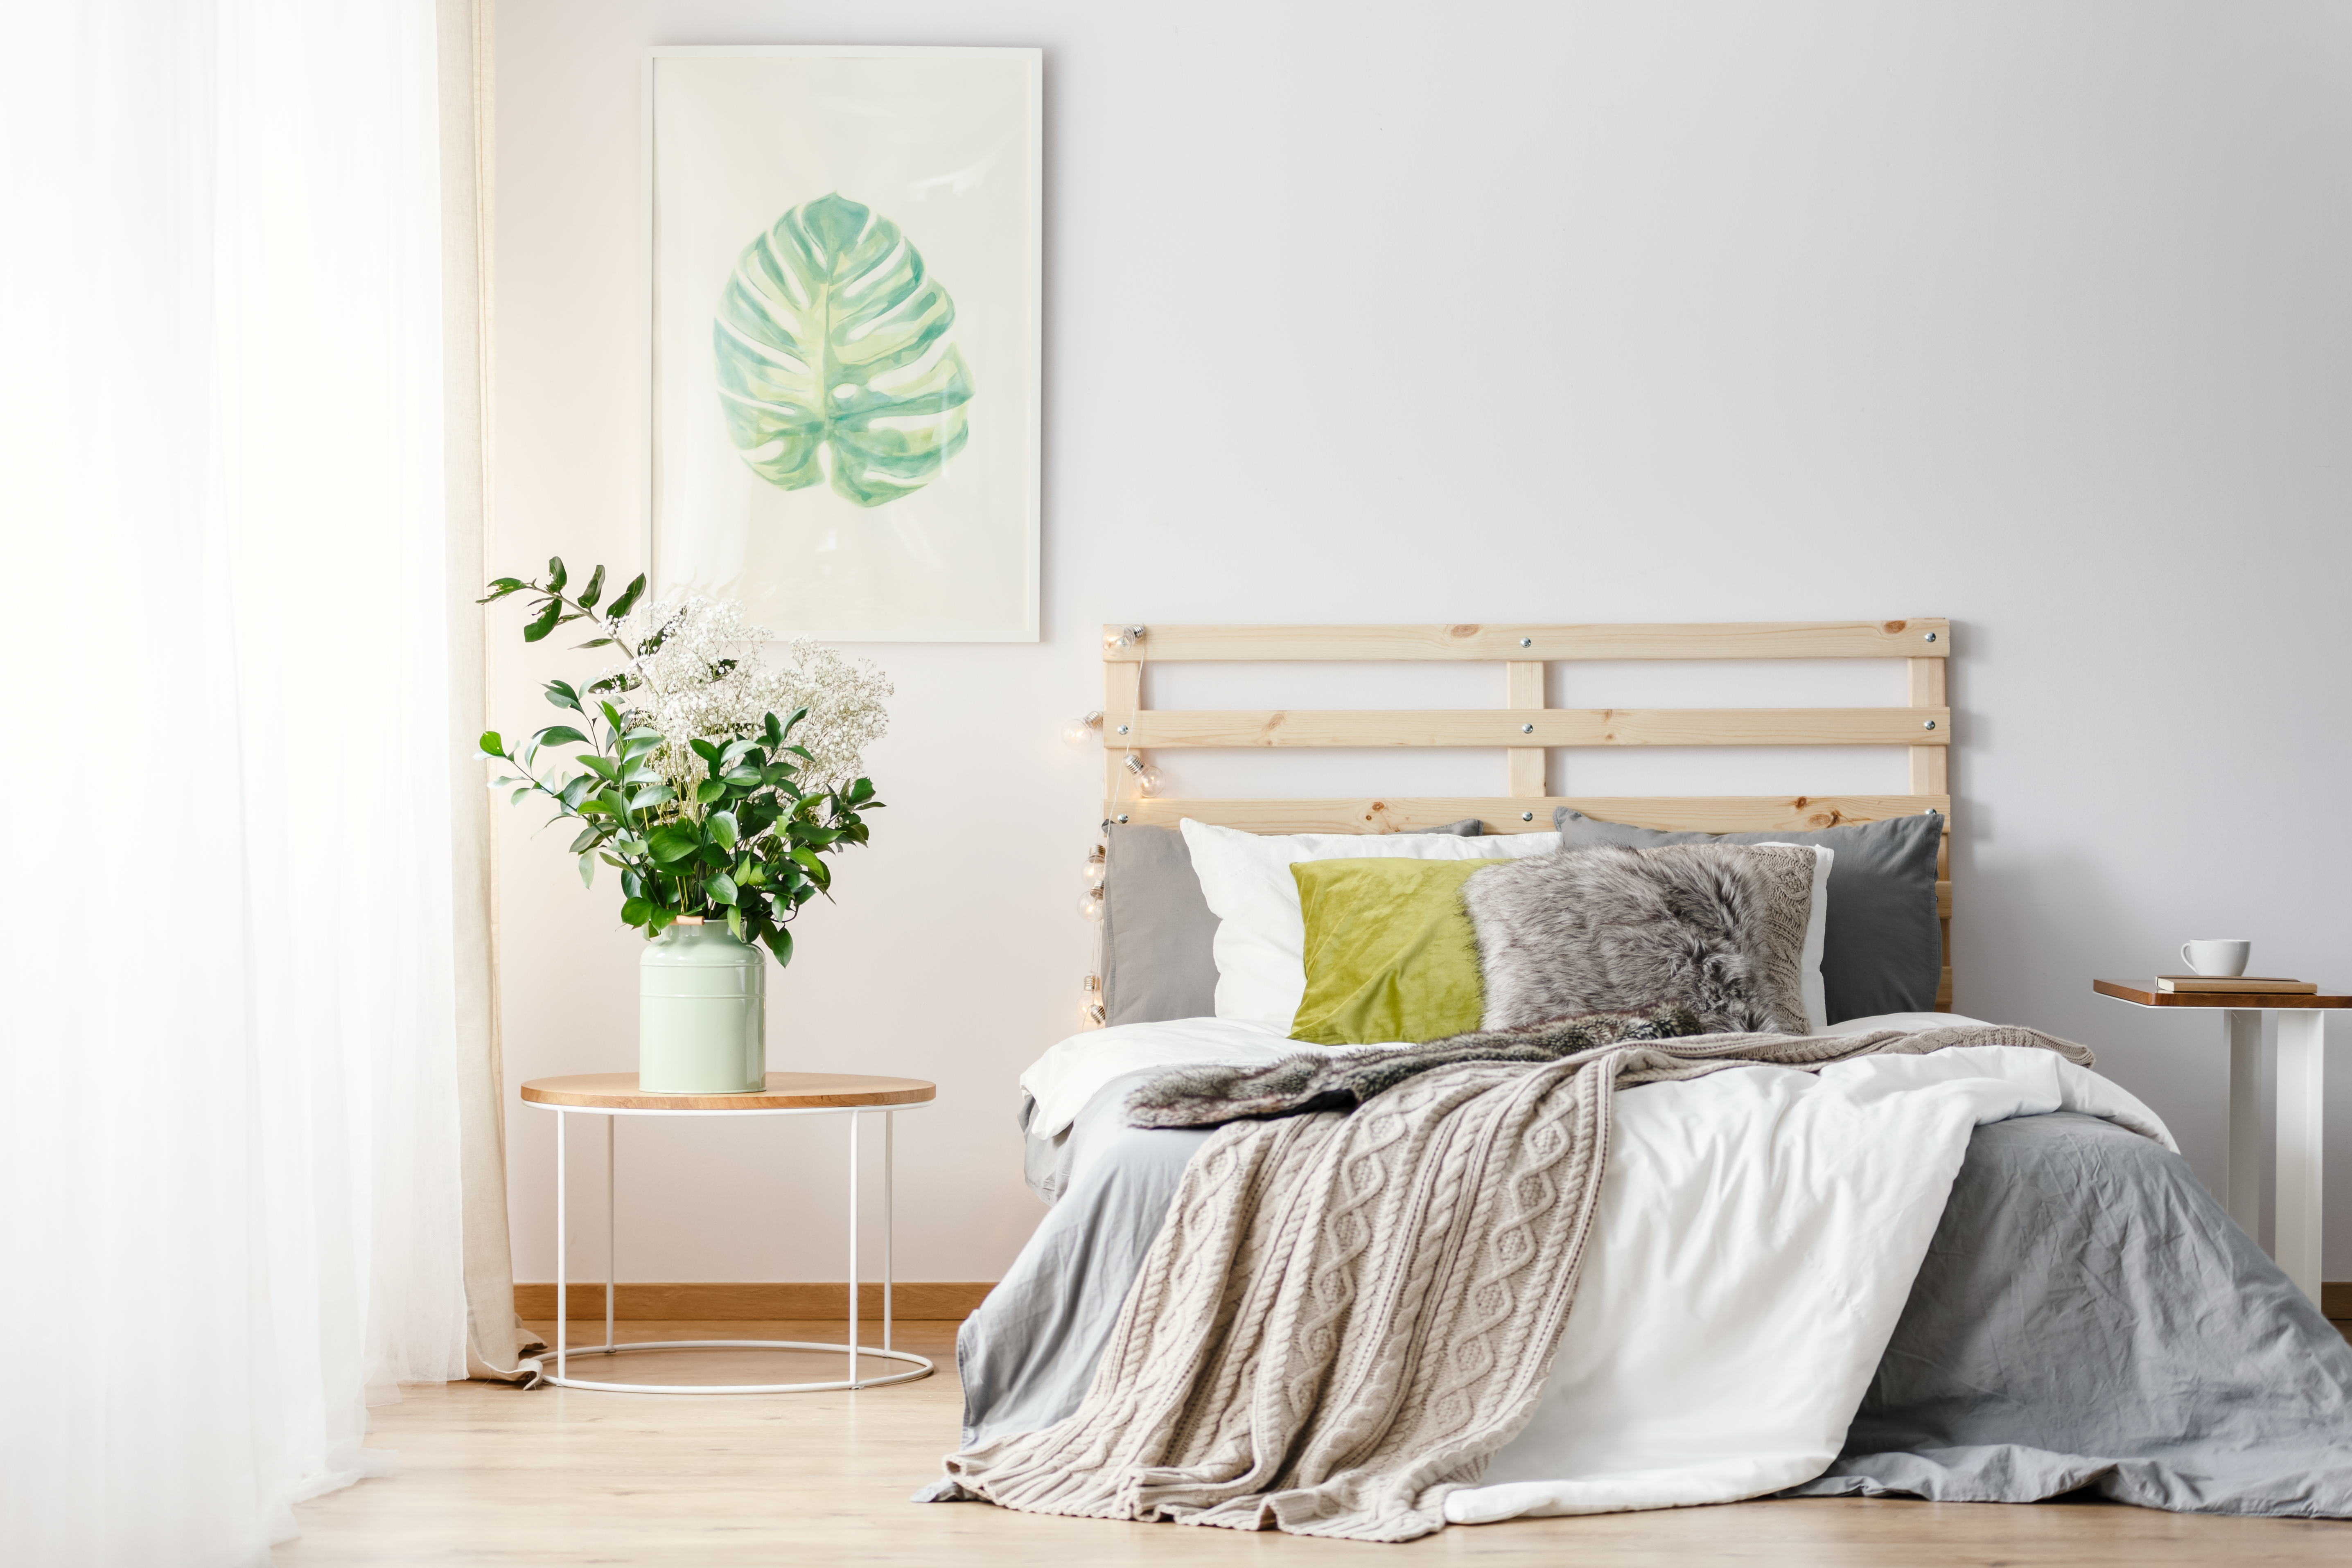 Excellent How To Decorate Your Bedroom Like A Pro 13 Hacks Of Unemploymentrelief Wooden Chair Designs For Living Room Unemploymentrelieforg